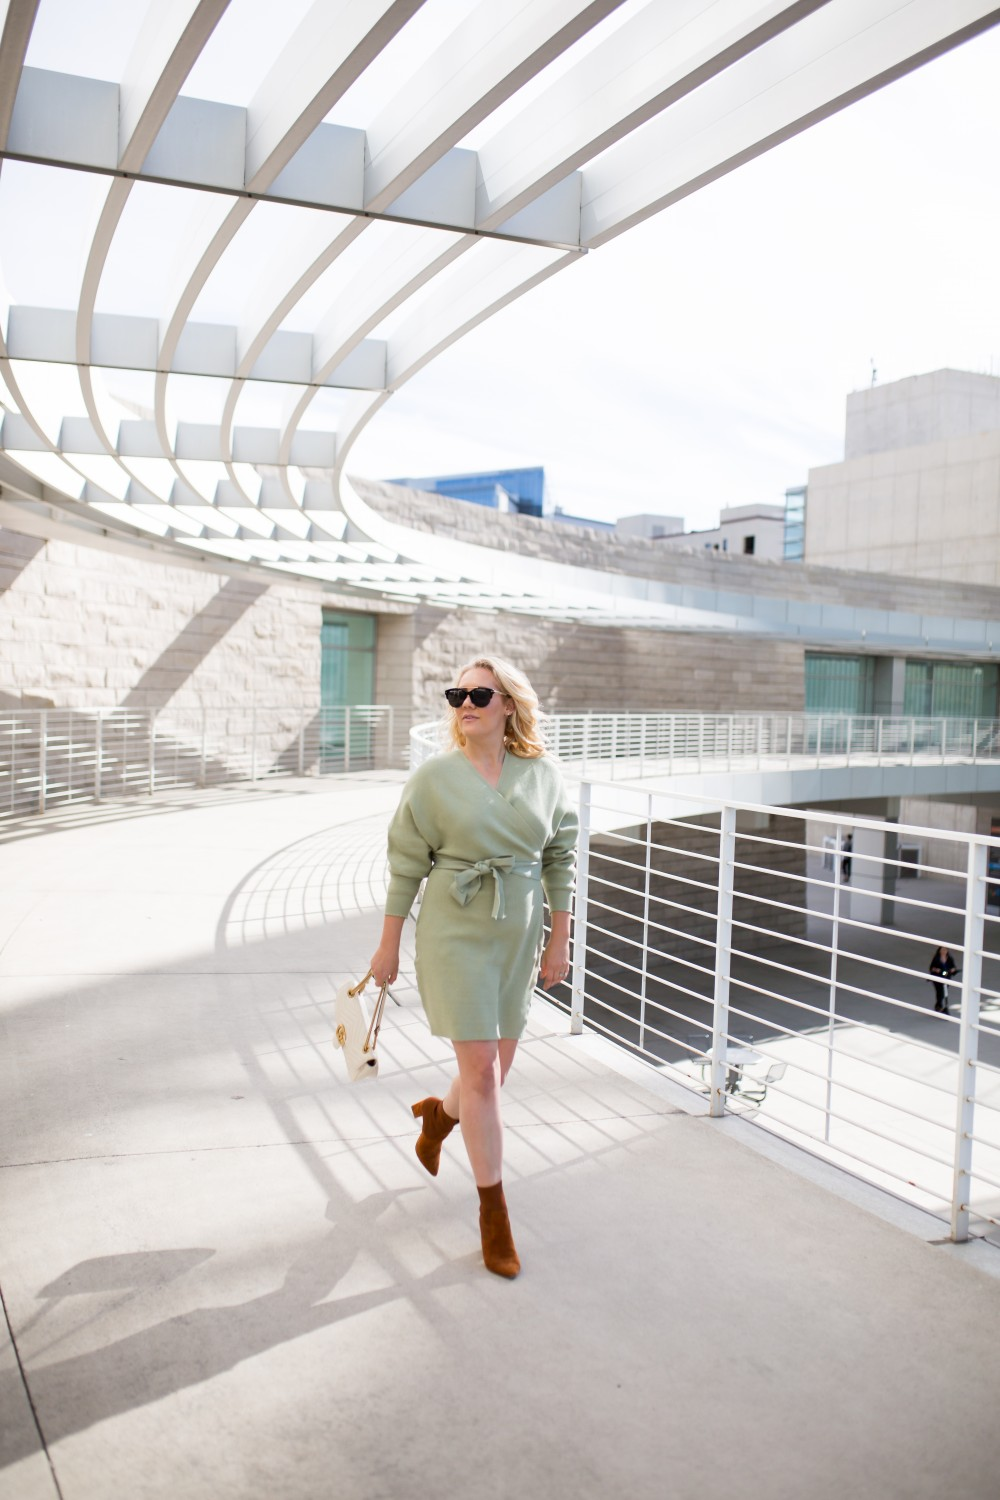 Top 20 Sweater Dresses Under $50, Amazon Fashion, Prime Fashion, Sweater Dress, Steve Madden Sock Booties, Gucci Marmont Bag, Fall Style, Fall Outfit Inspiration, Have Need Want